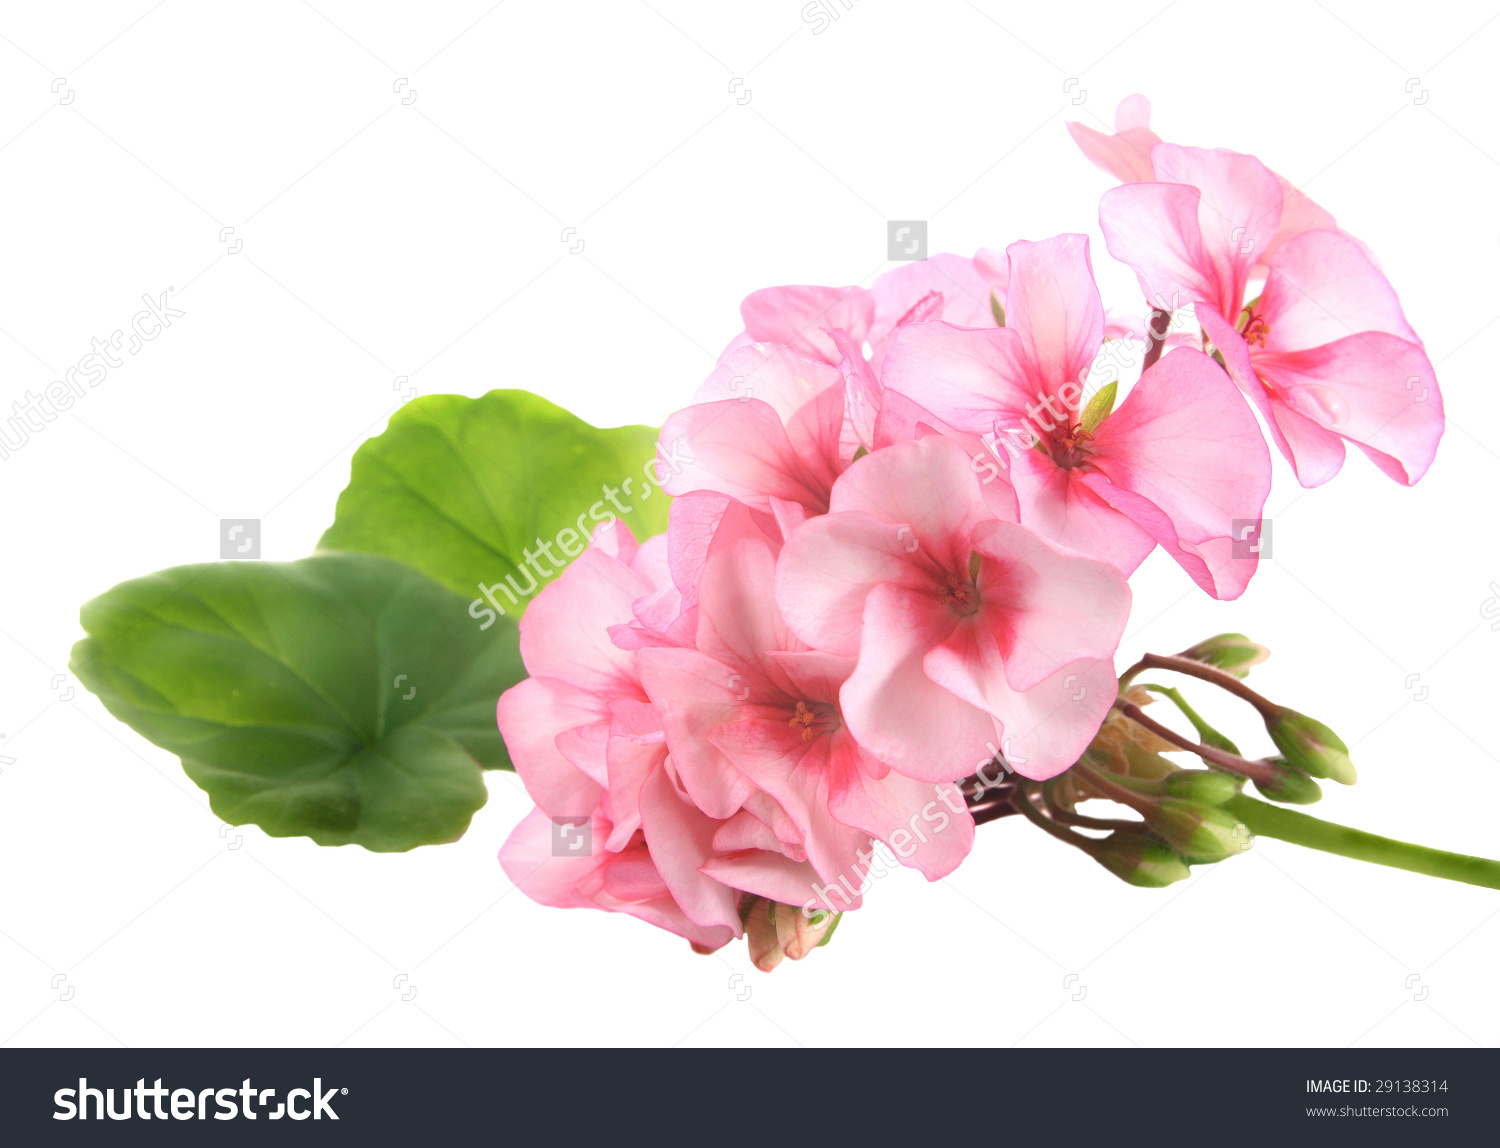 Pink Flowers Of A Geranium With Green Leaves On White Background.